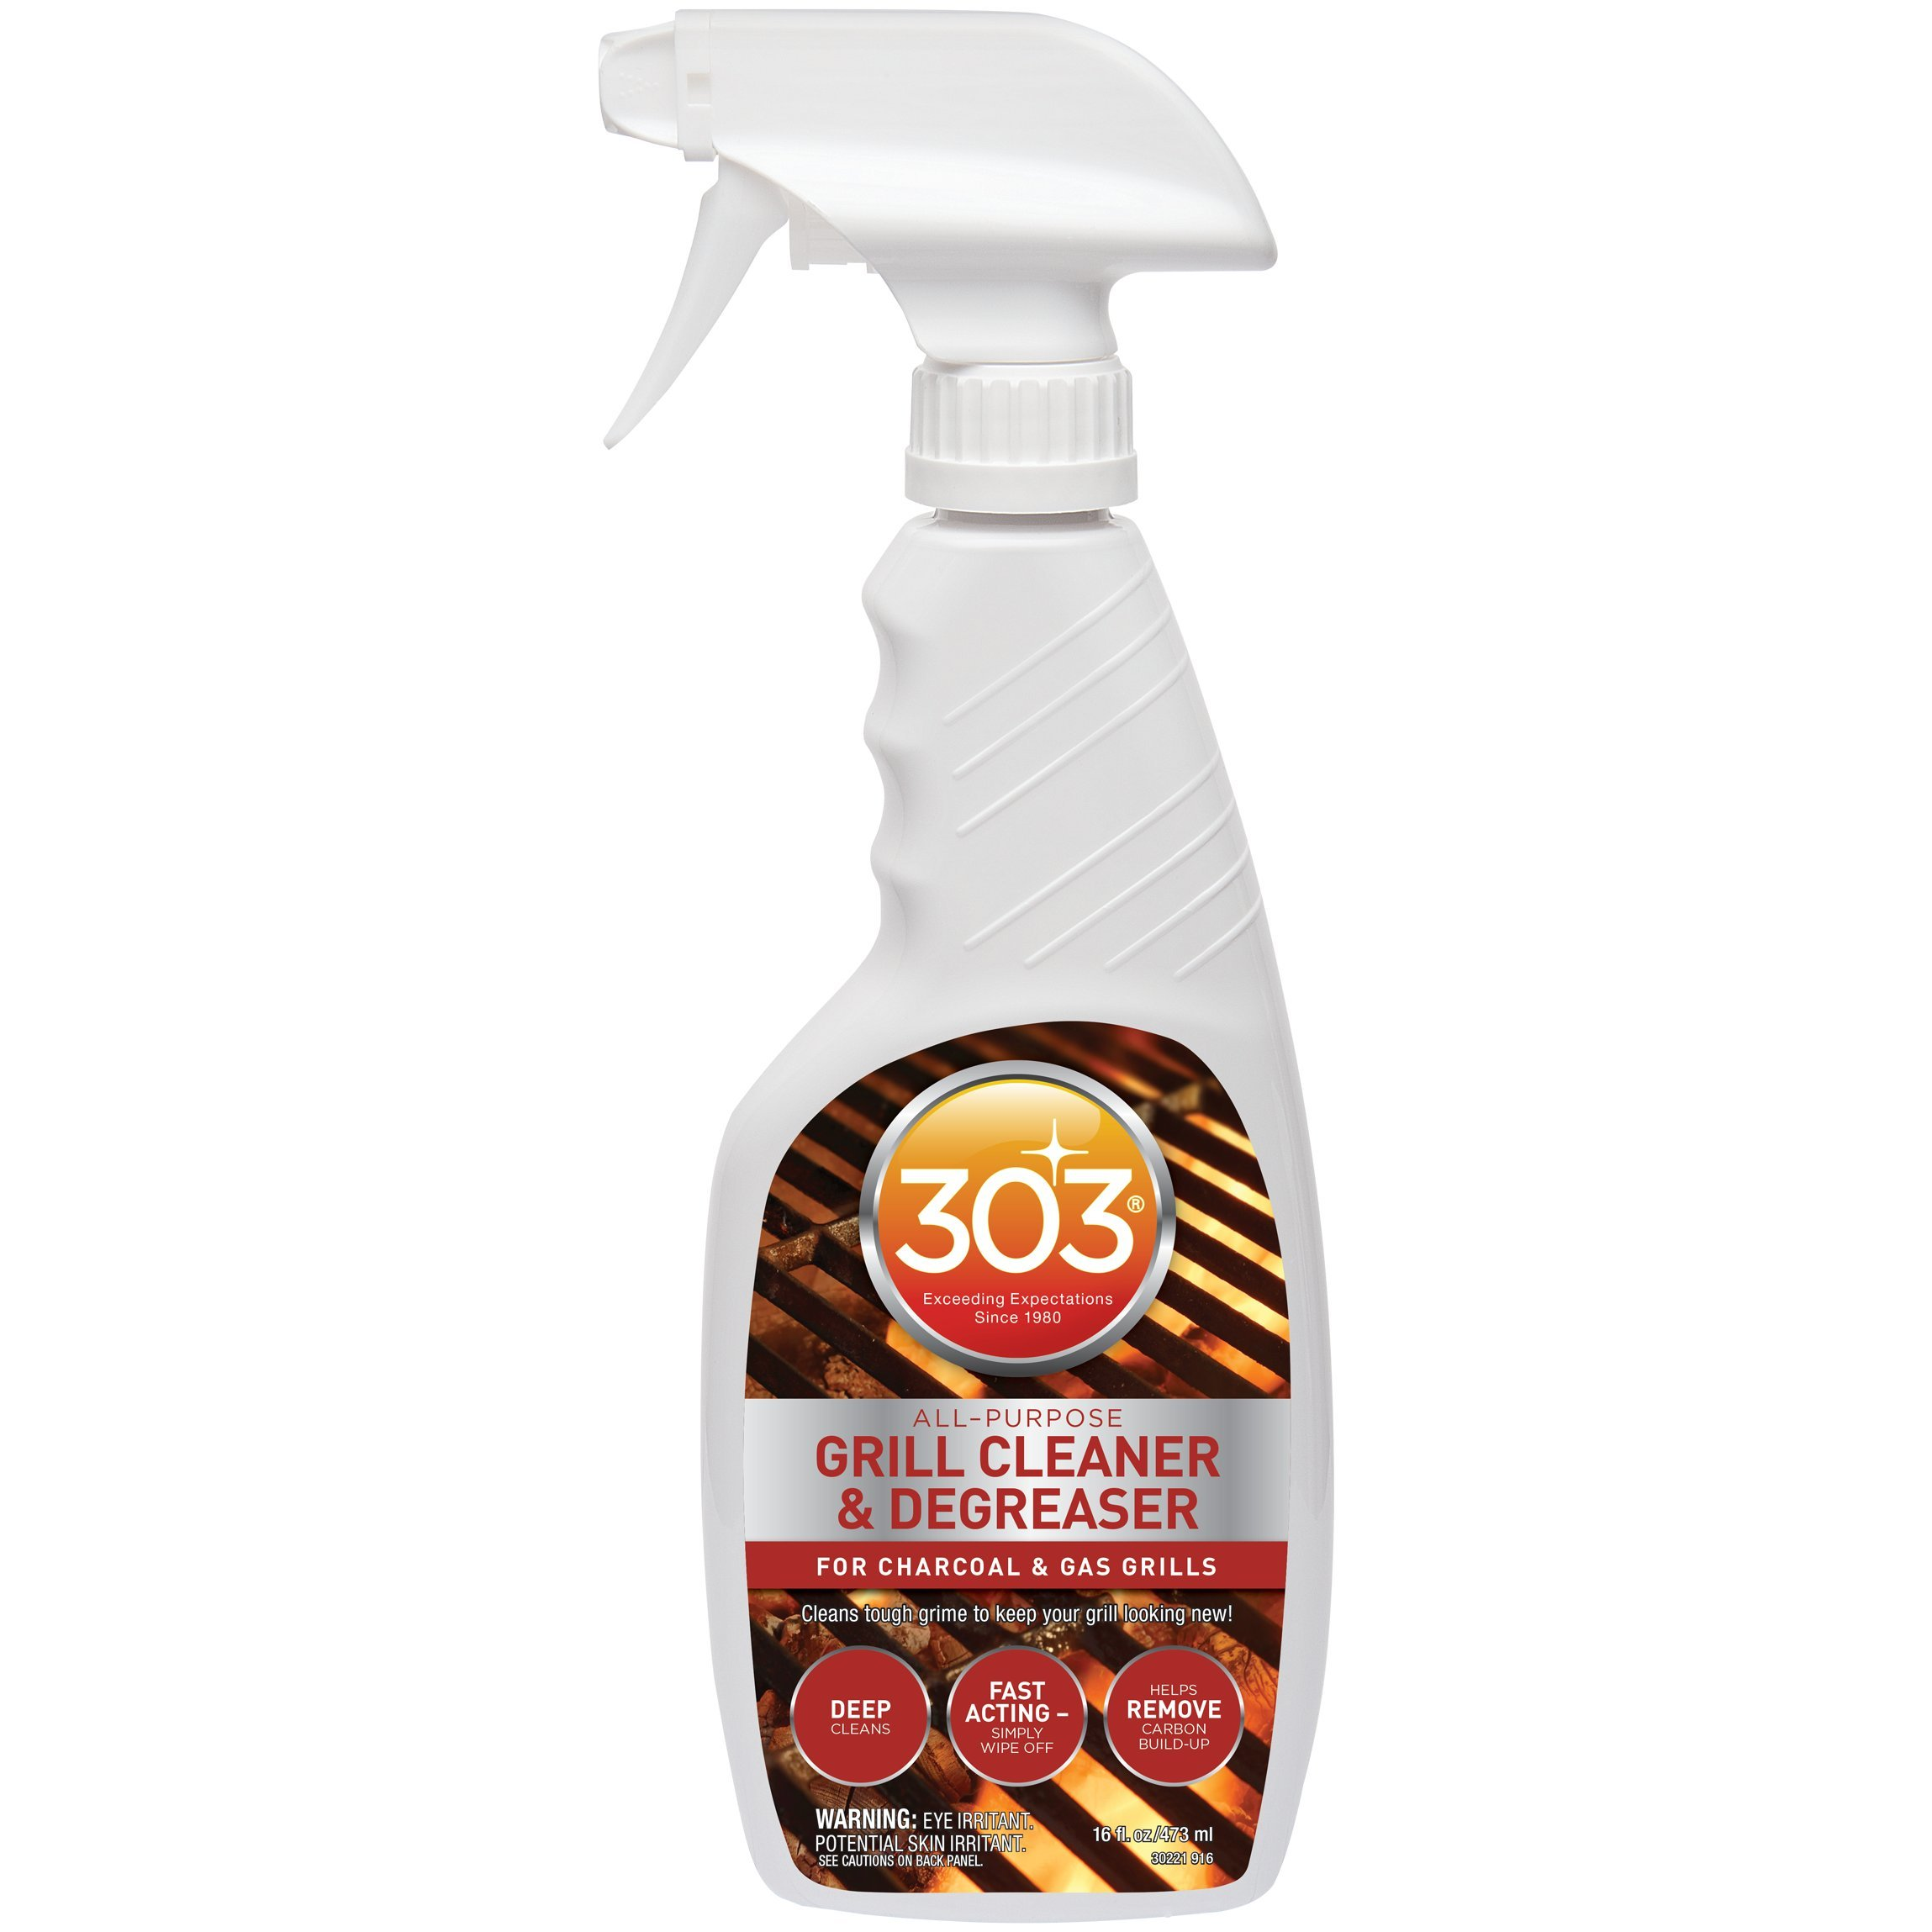 303 Grill Cleaner and Degreaesr - Professional Strength, Biodegradable for BBQ Grills and Grates, 16 fl. oz. spray, Pack of 6